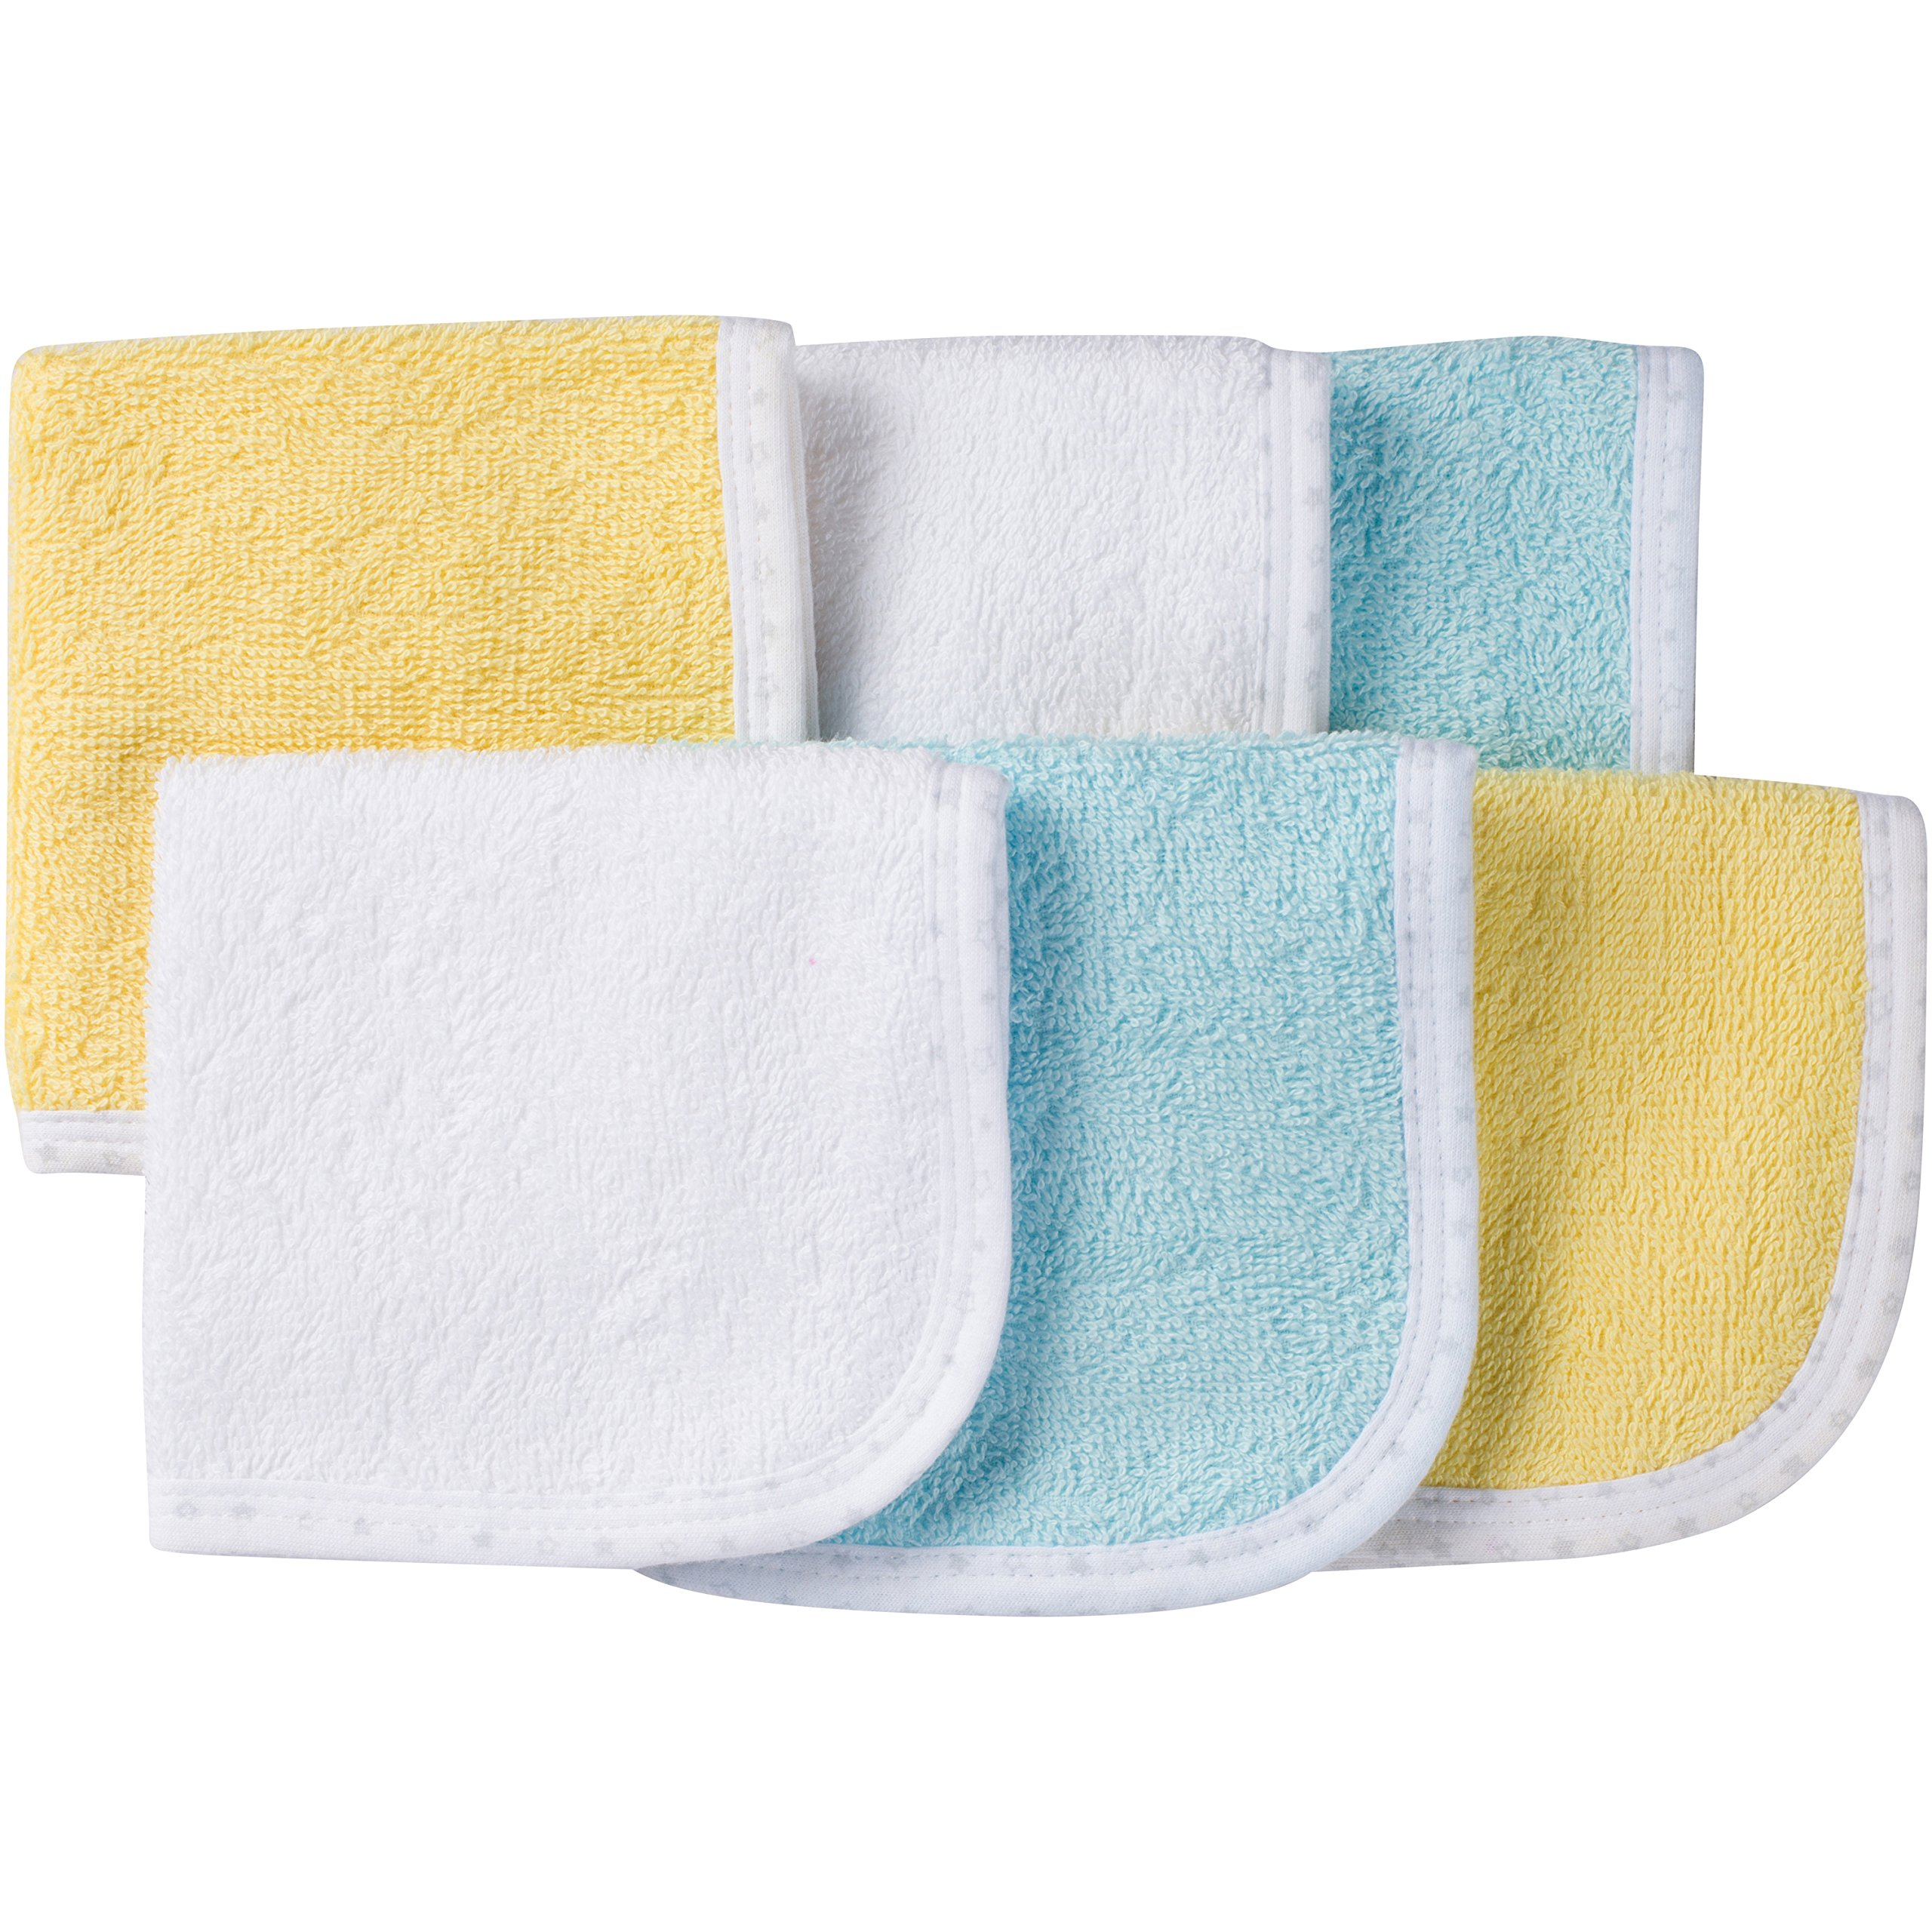 6-Pack 100% Cotton Terry Washcloths (Pastels) by Gerber Childrenswear